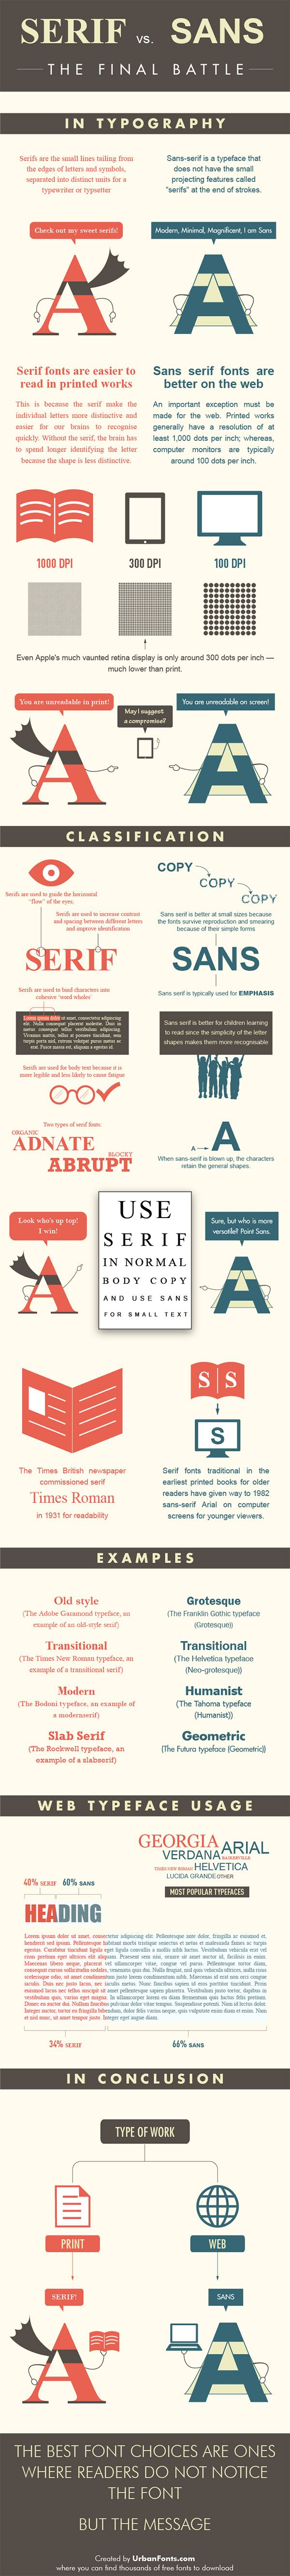 Serif vs Sans: The Final Battle [Infographic] | Inspired Magazine